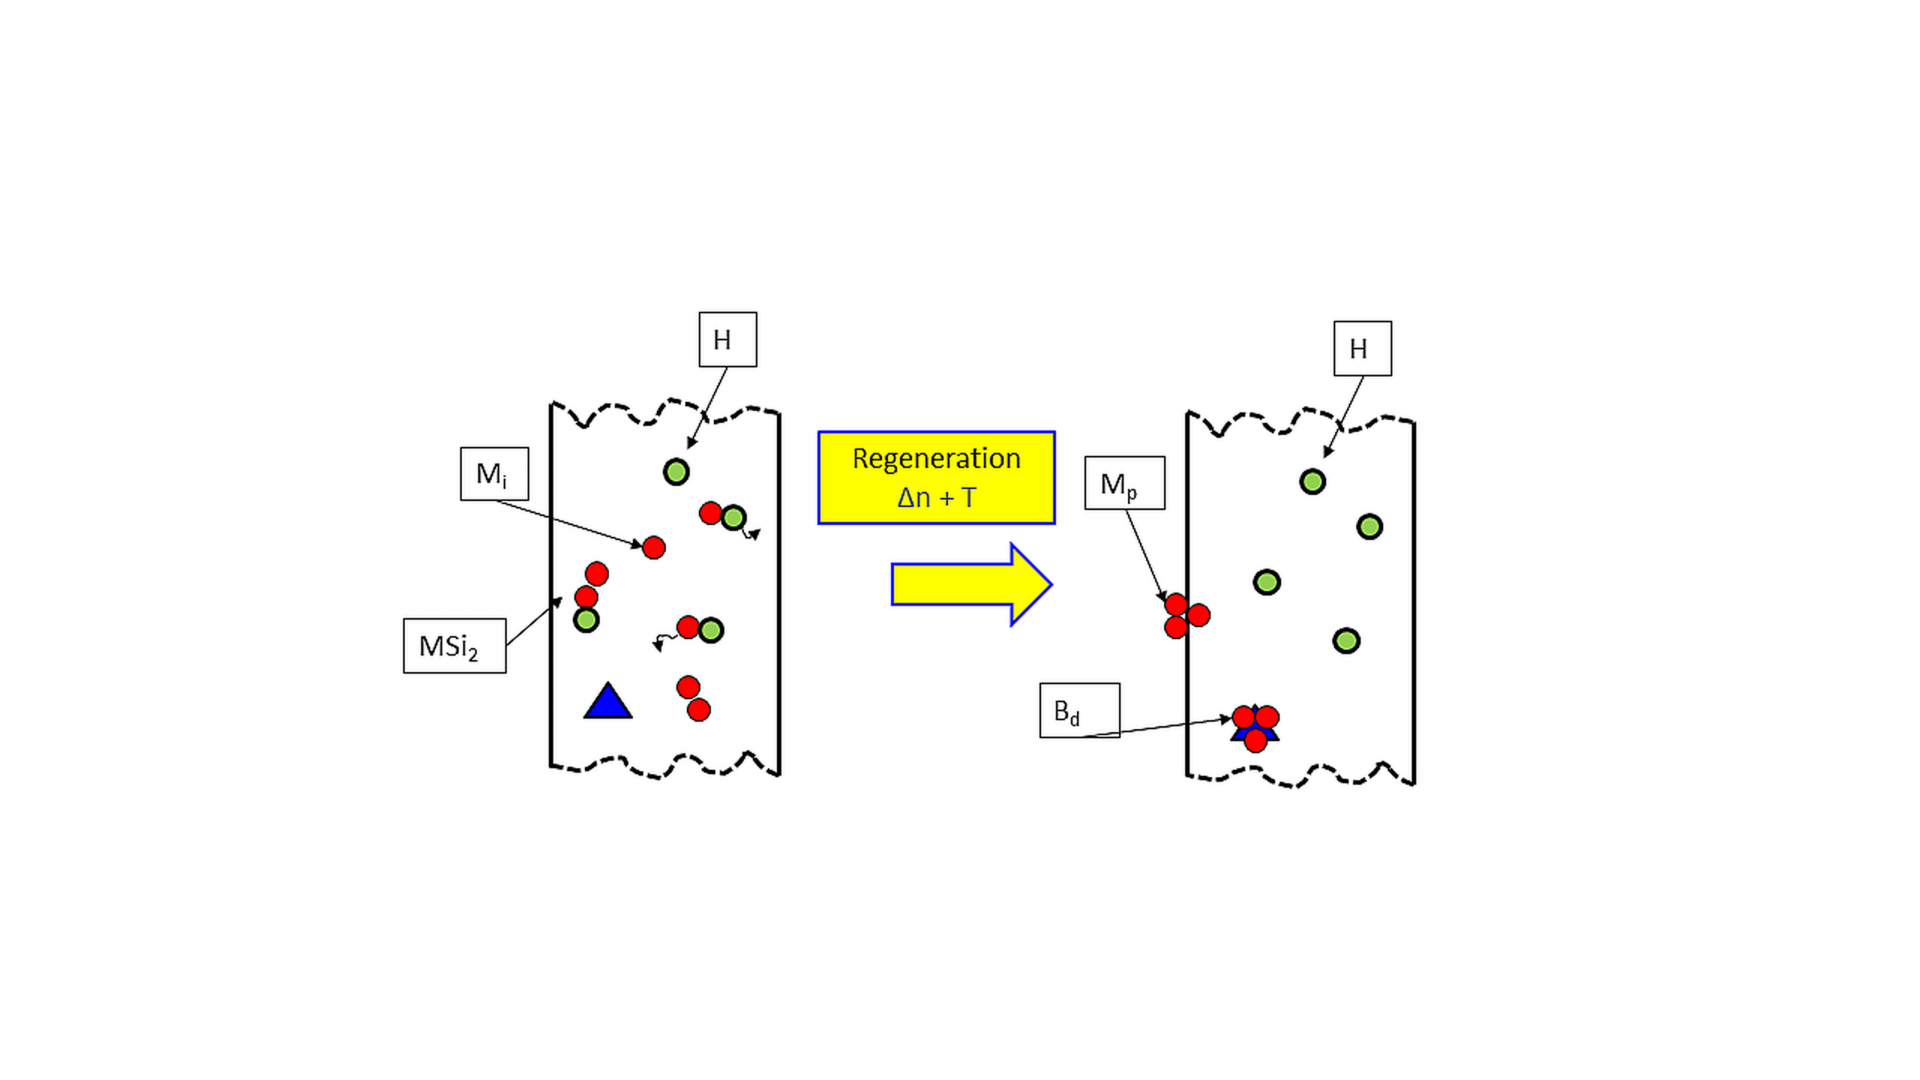 Figure 2. Schematic representation of the LeTID model suggested by the LeTID Norm consortium